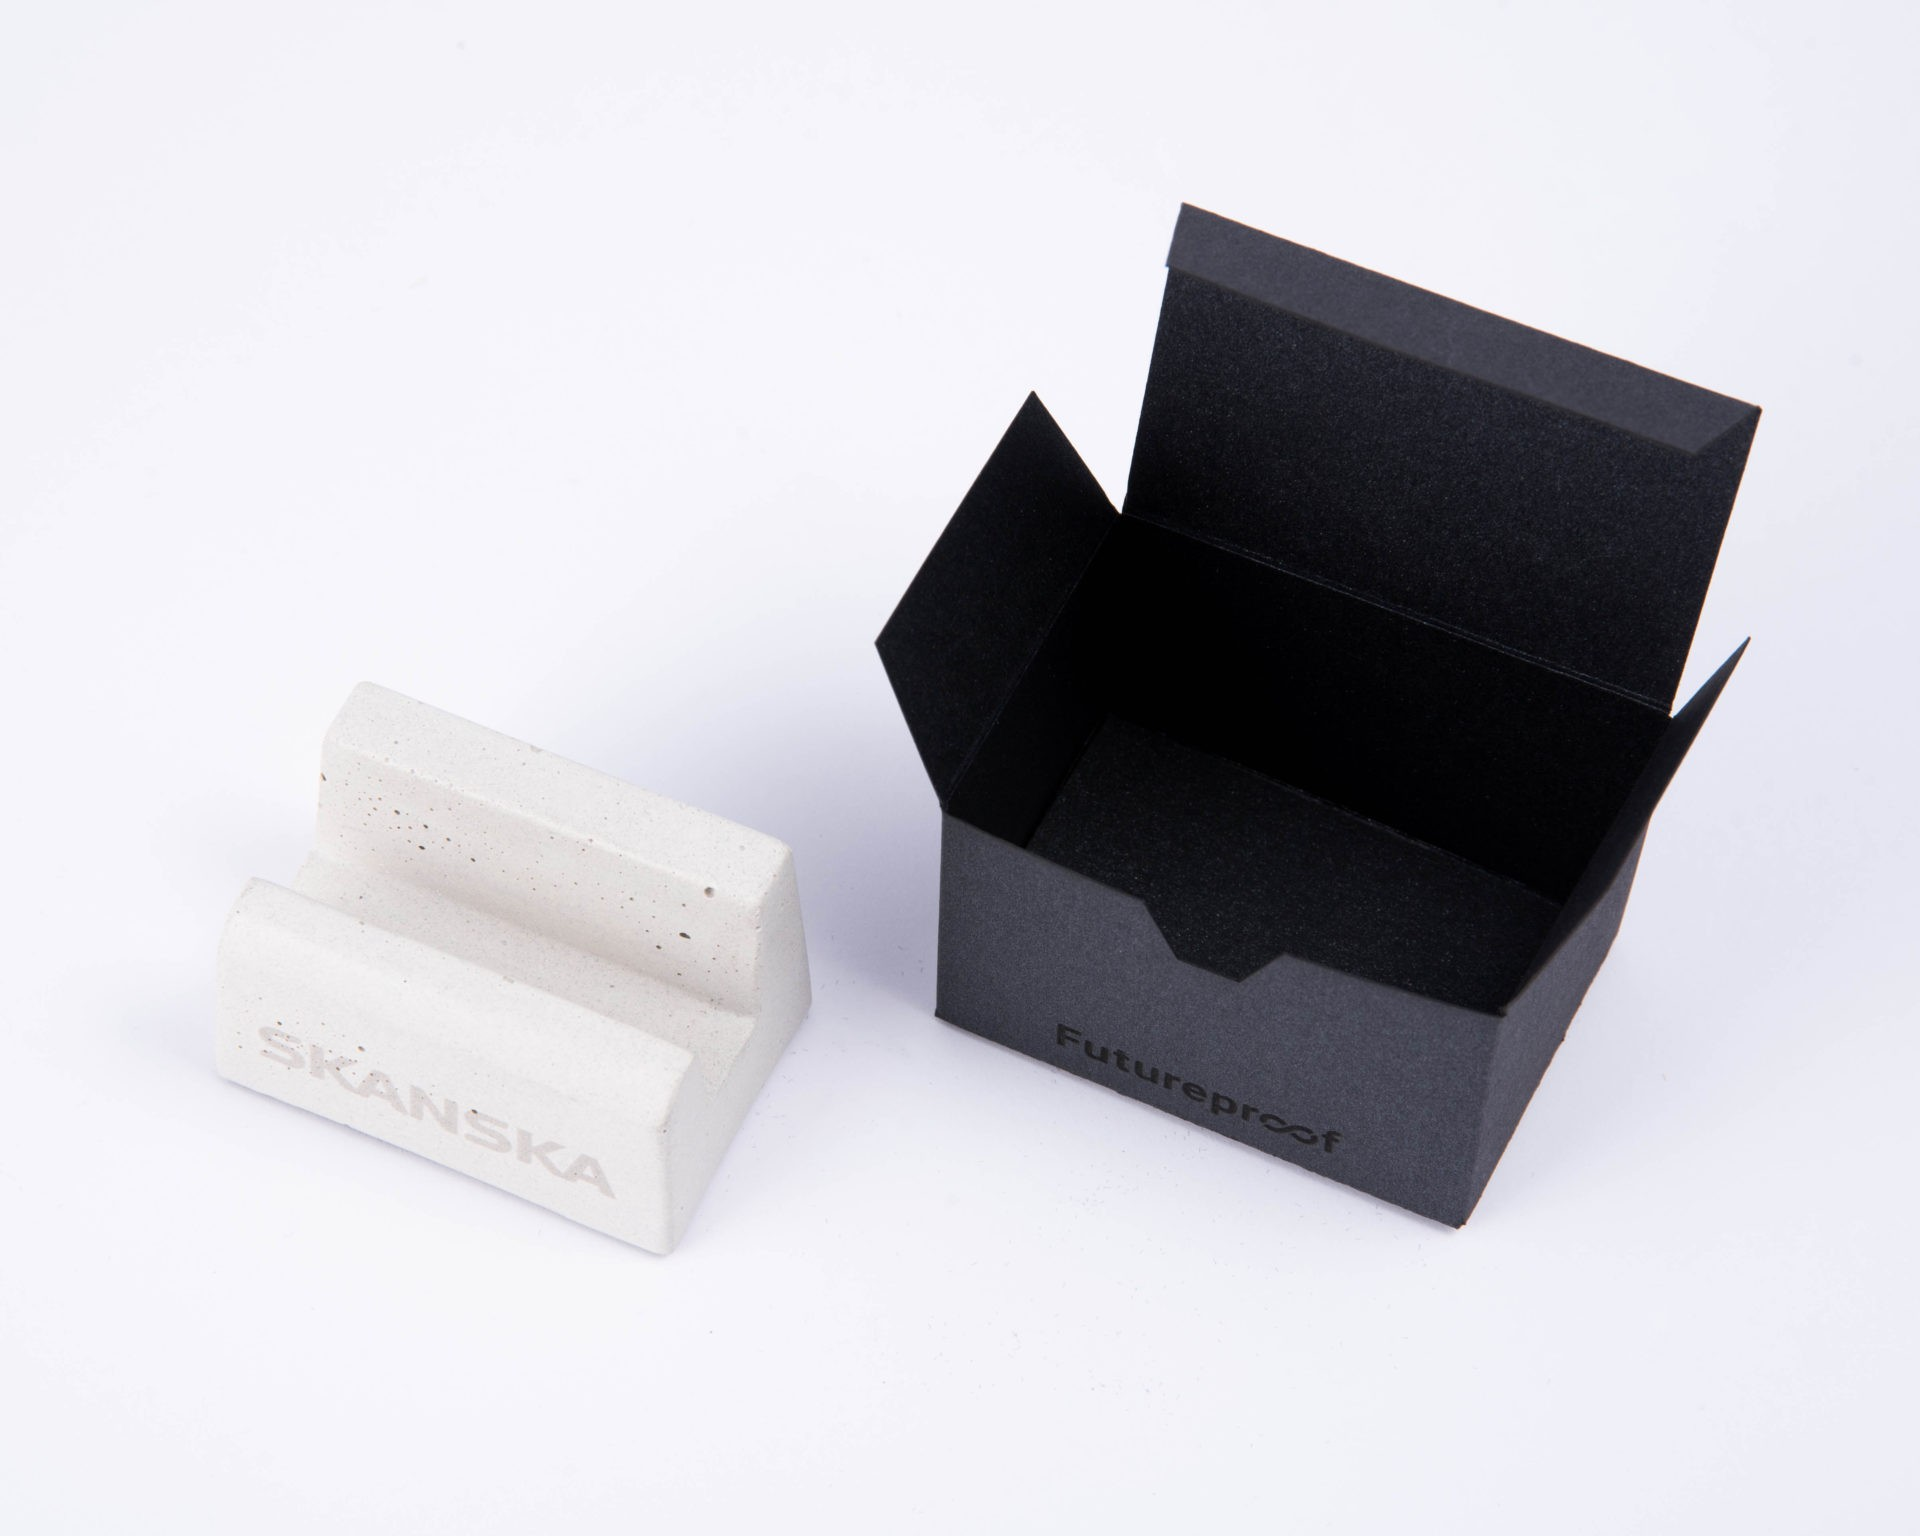 Business card holder with logo and custom made packaging as corporate gift for Skanska